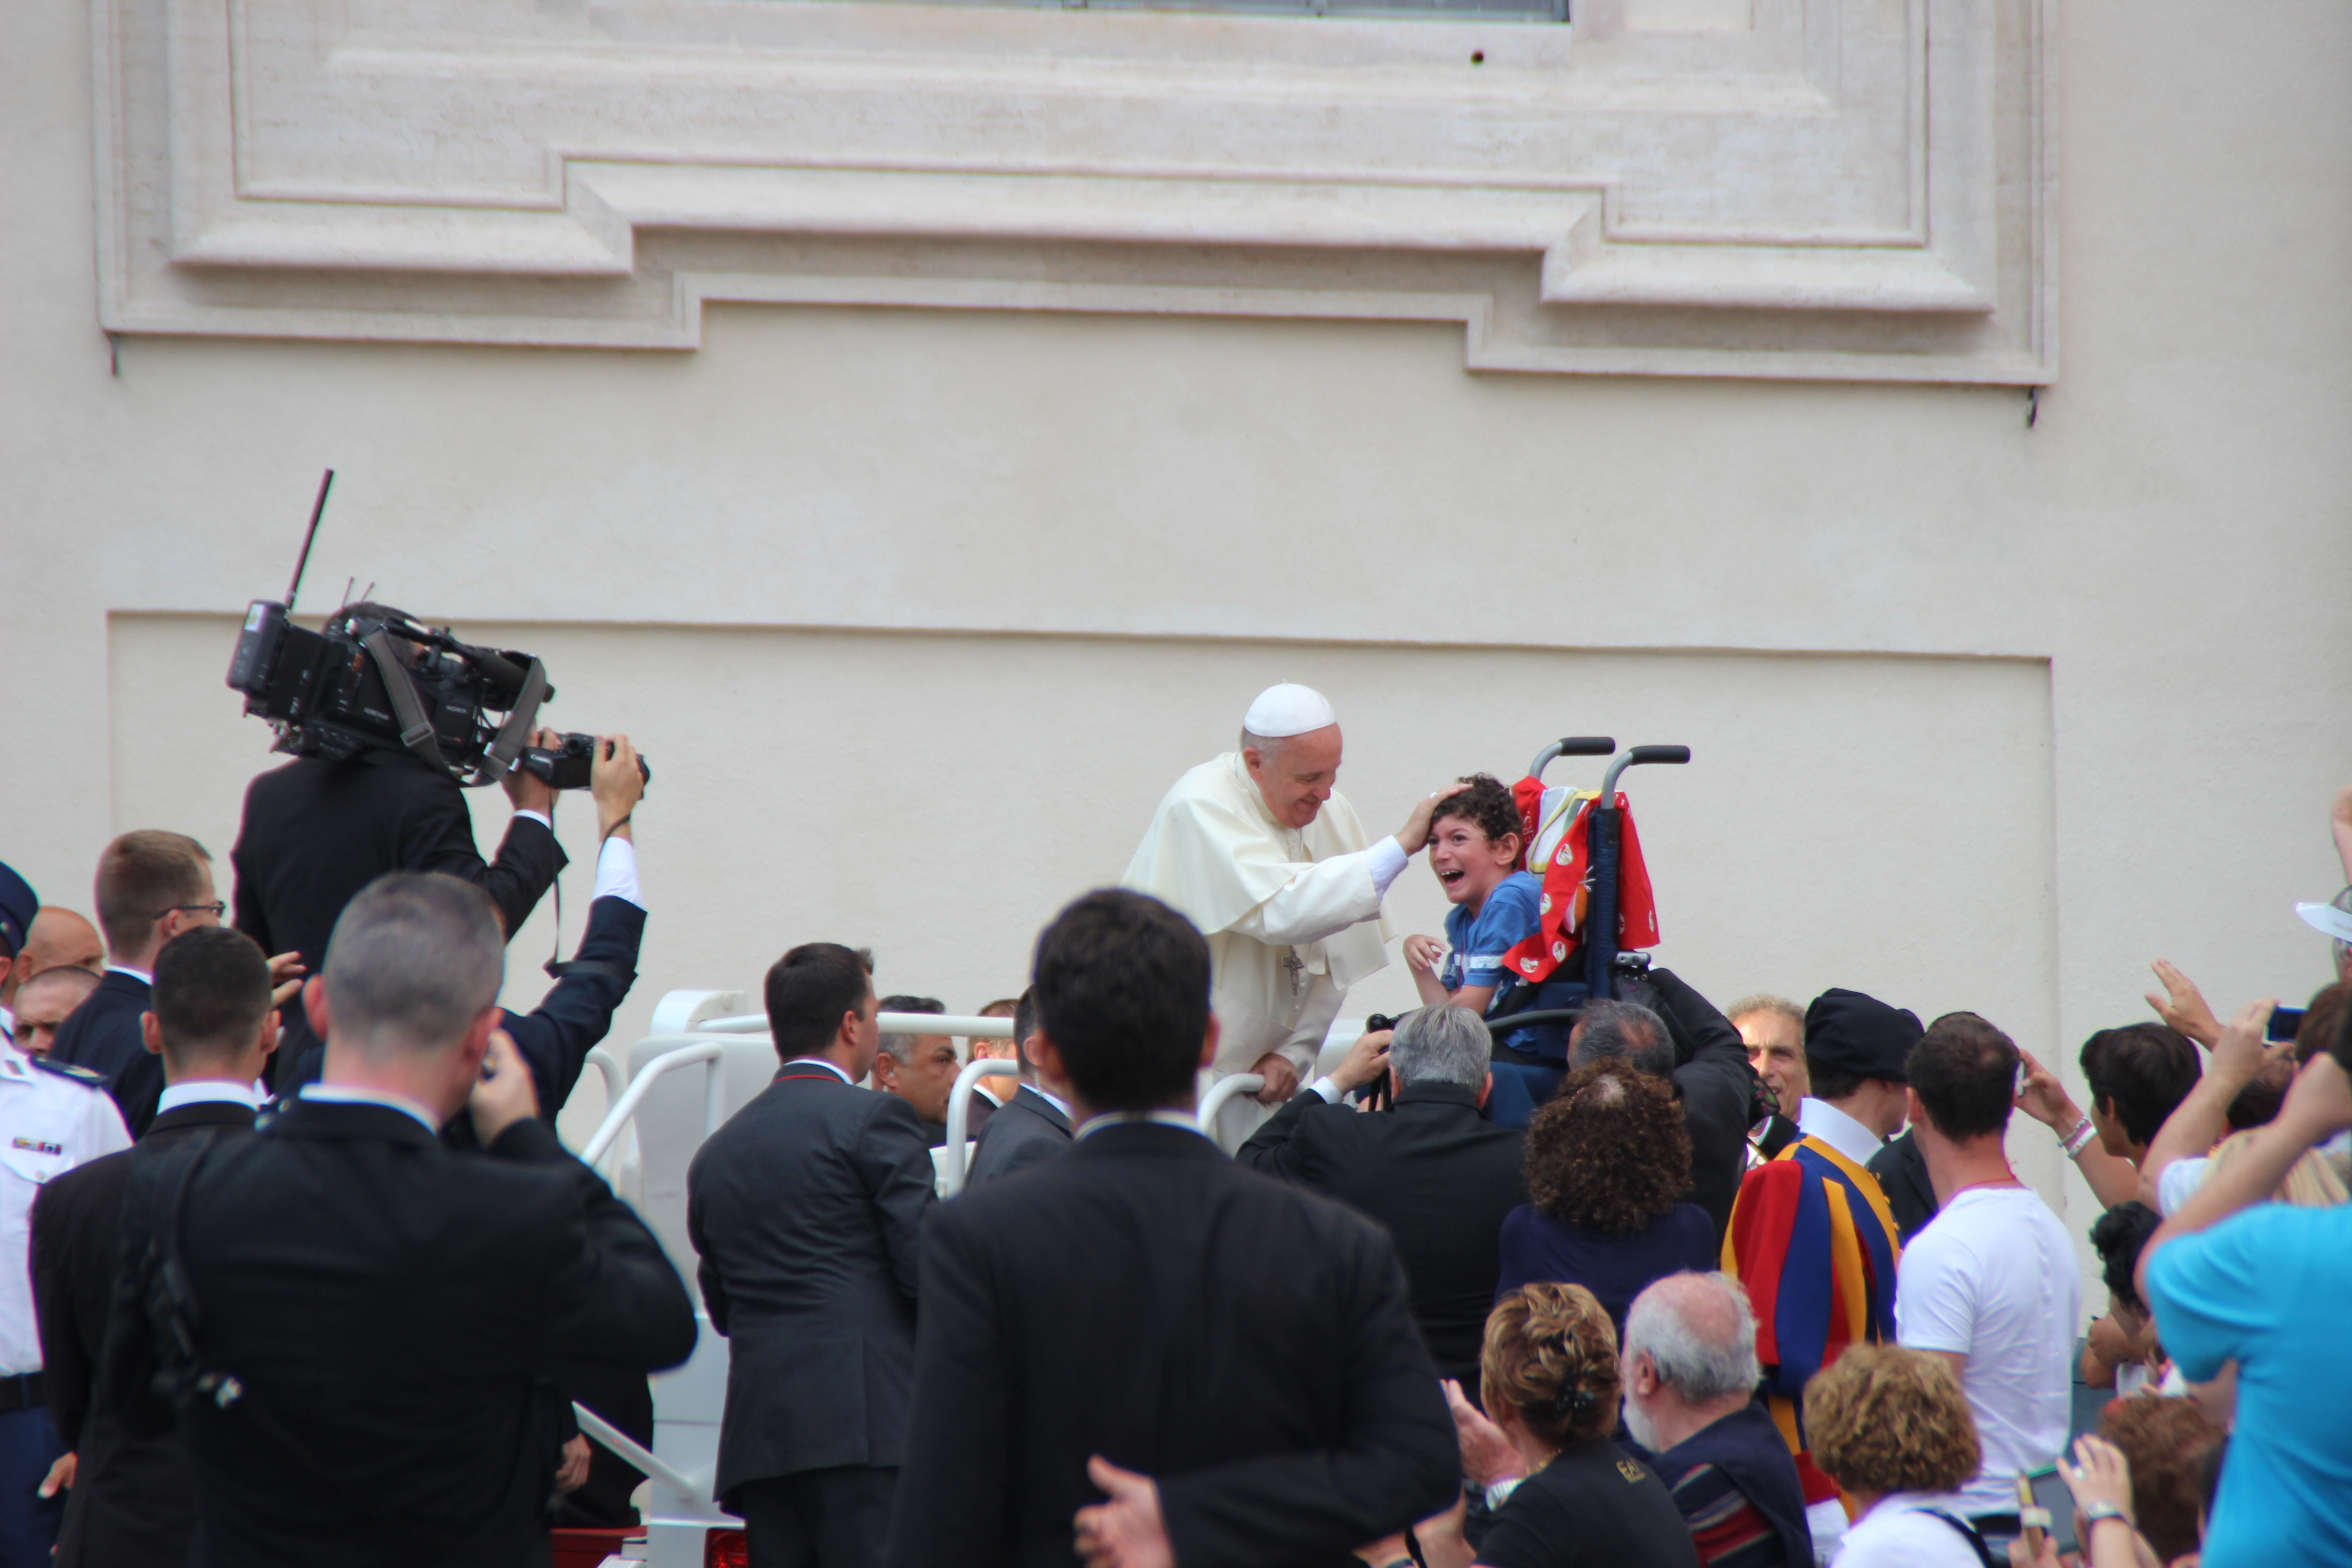 Pope Francis during the audience with Rinnovamento nello Spirito Santo (St. Peter Square